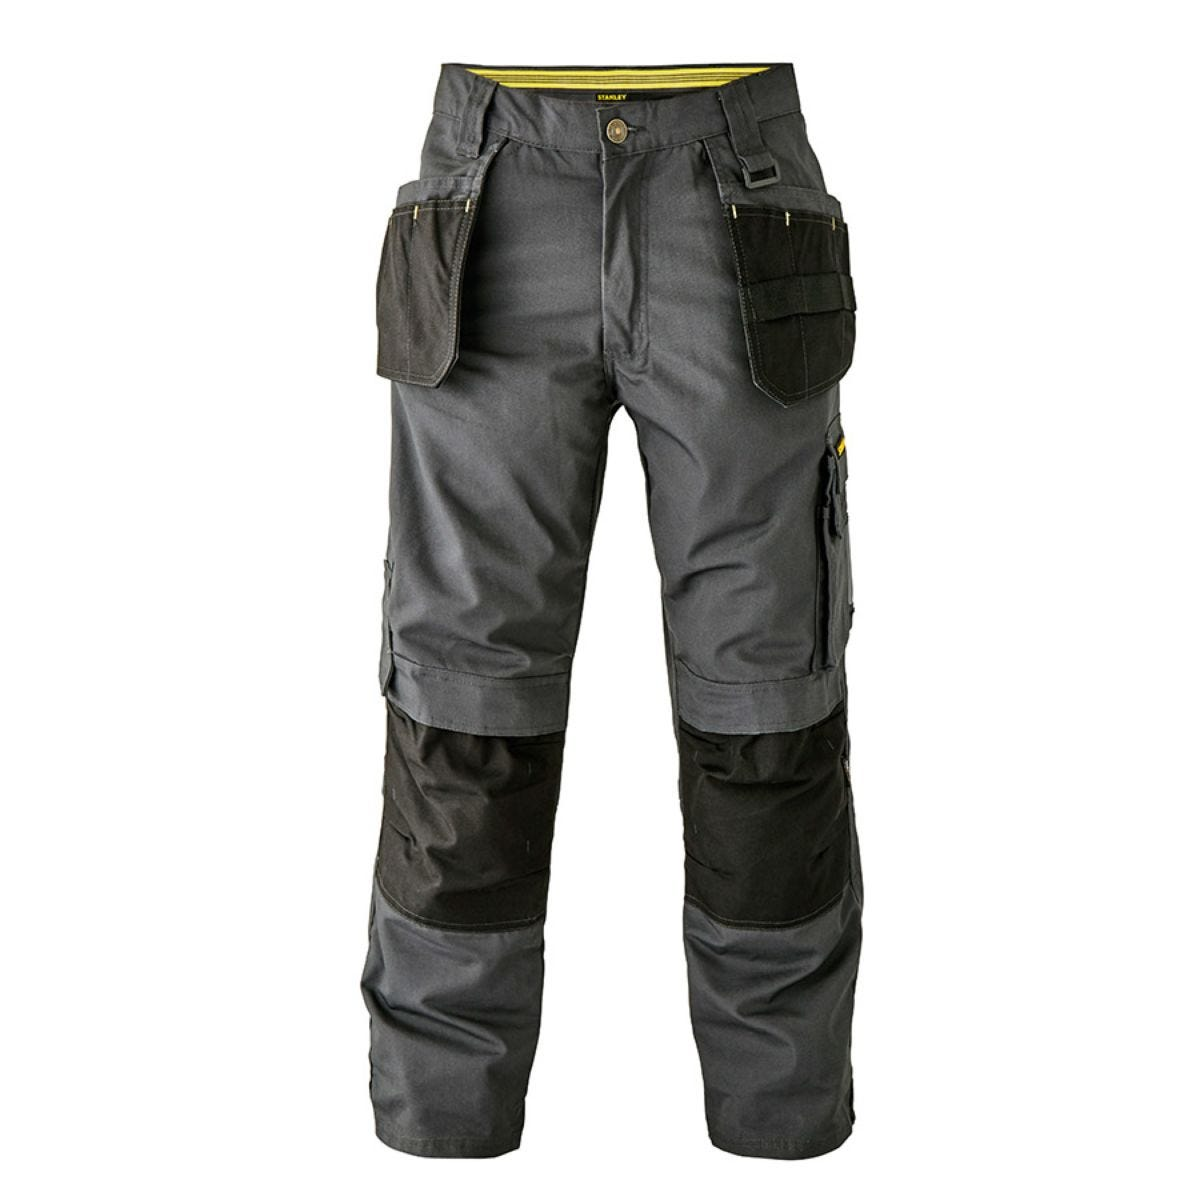 Stanley Workwear Newark Tradesman Trousers with Knee Pad Pouches 31 Inch Leg - Grey